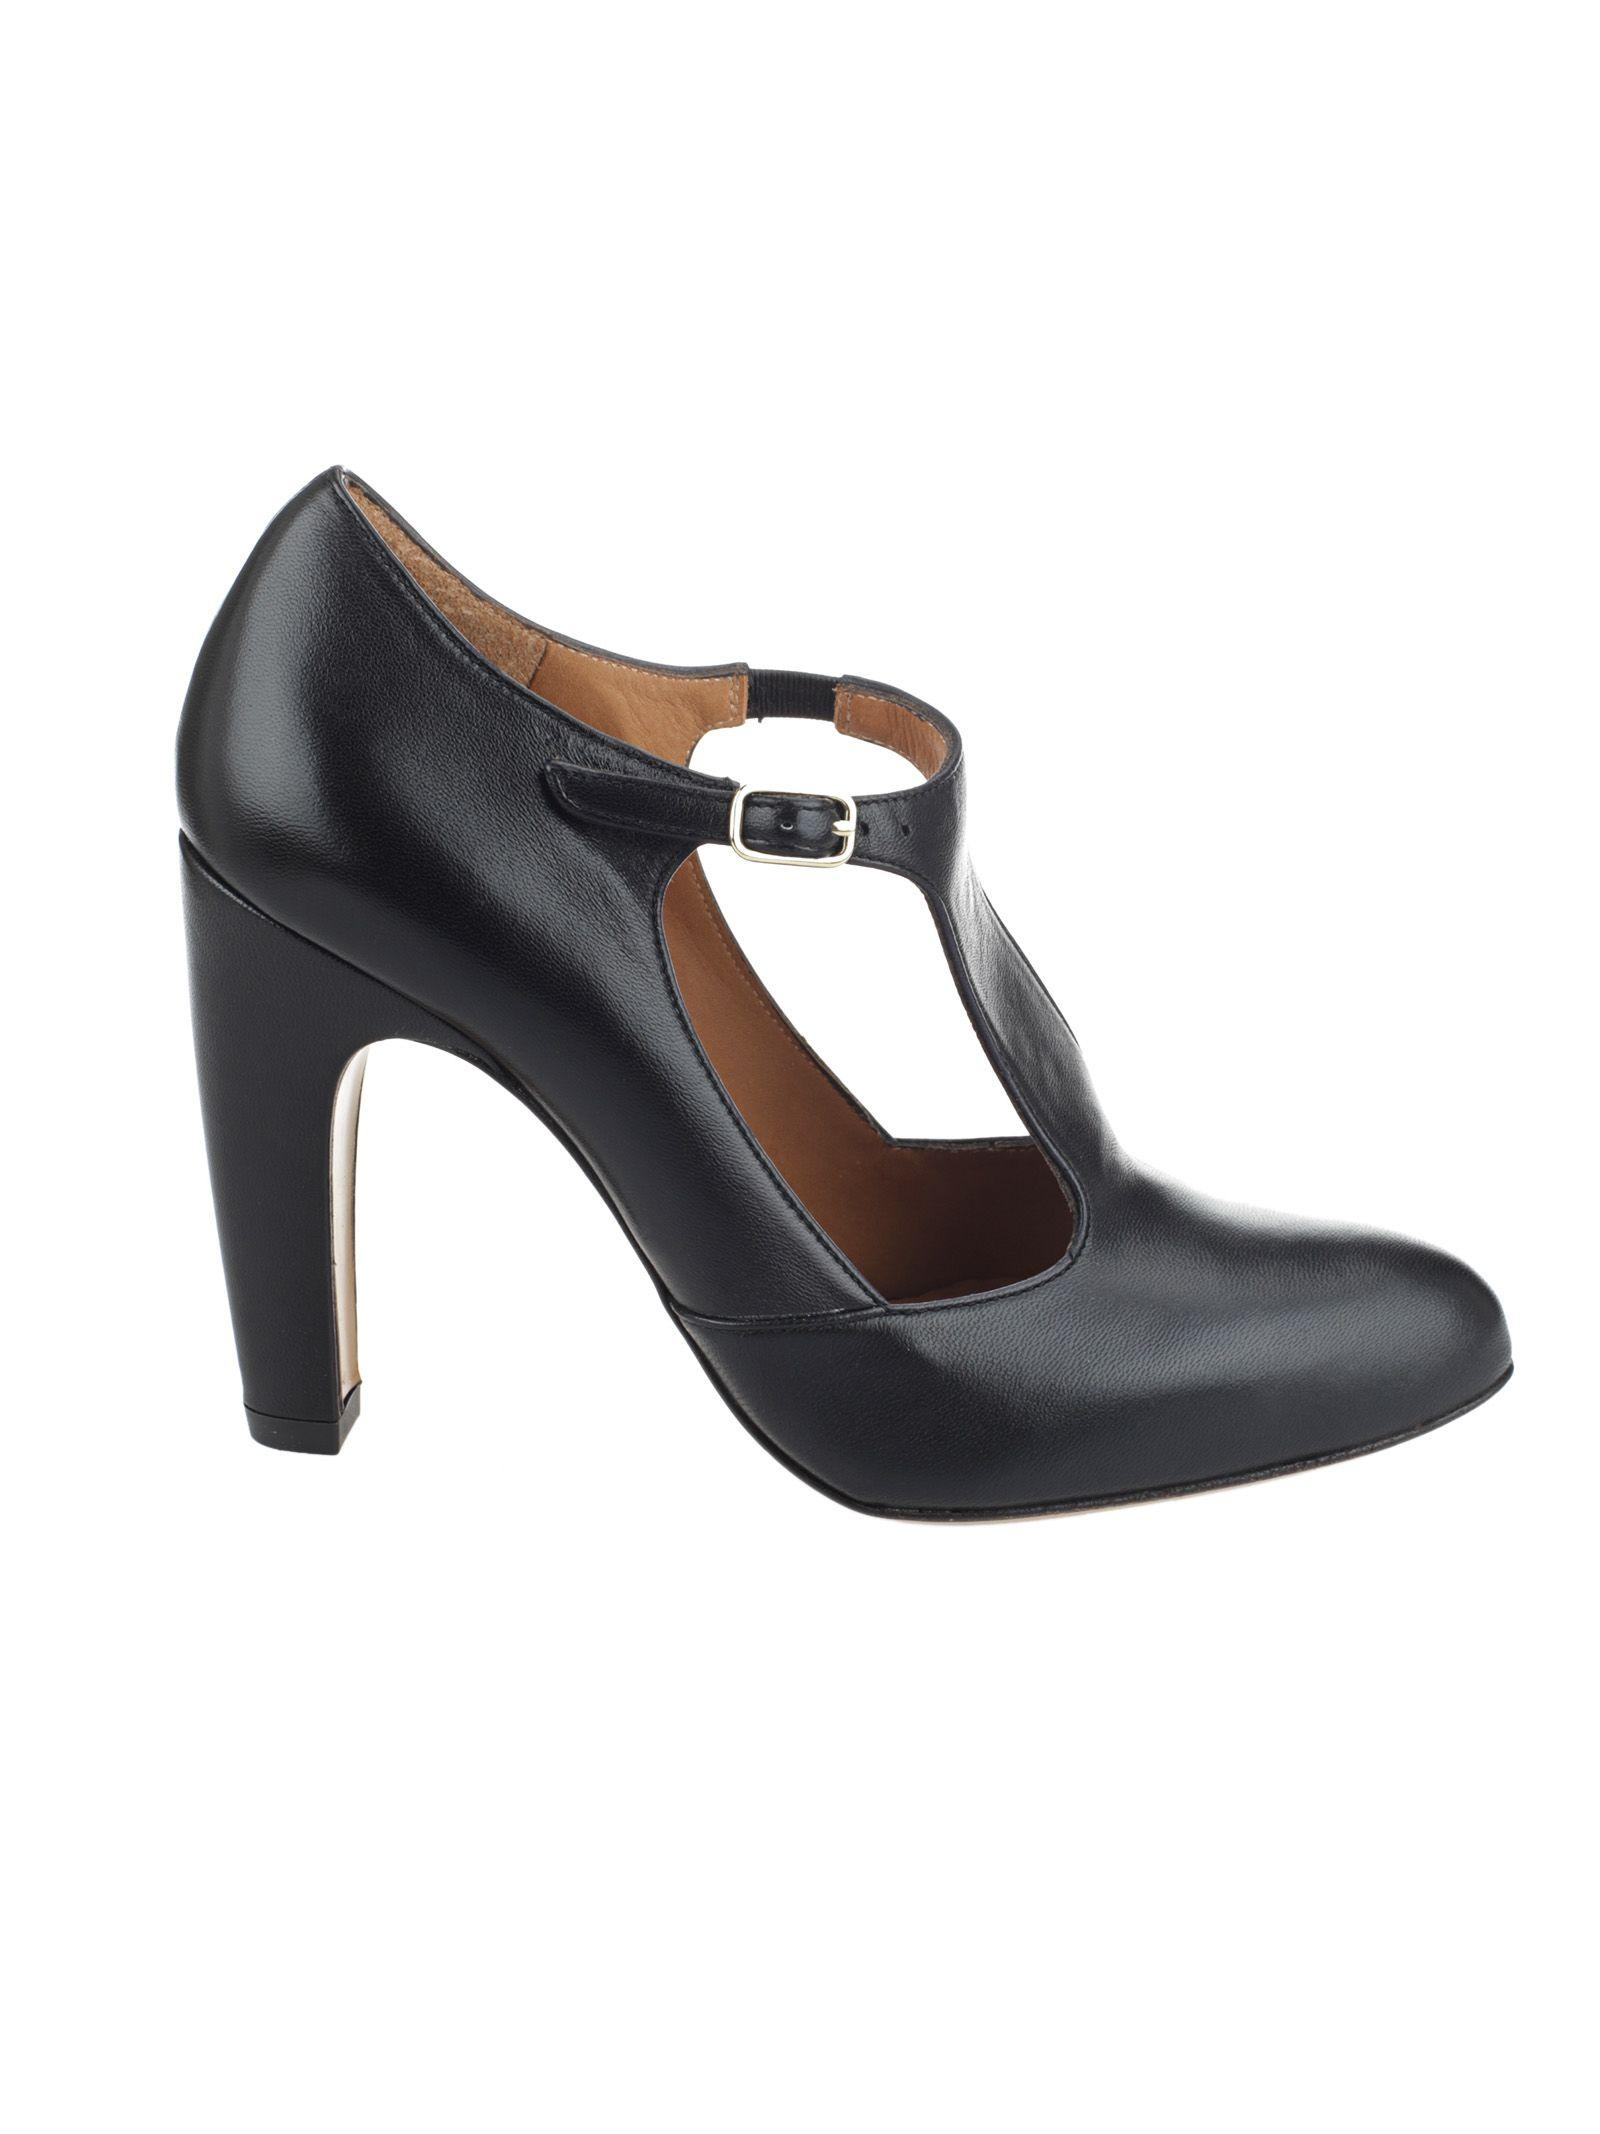 Chie Mihara Classic T-bar Pumps In Black